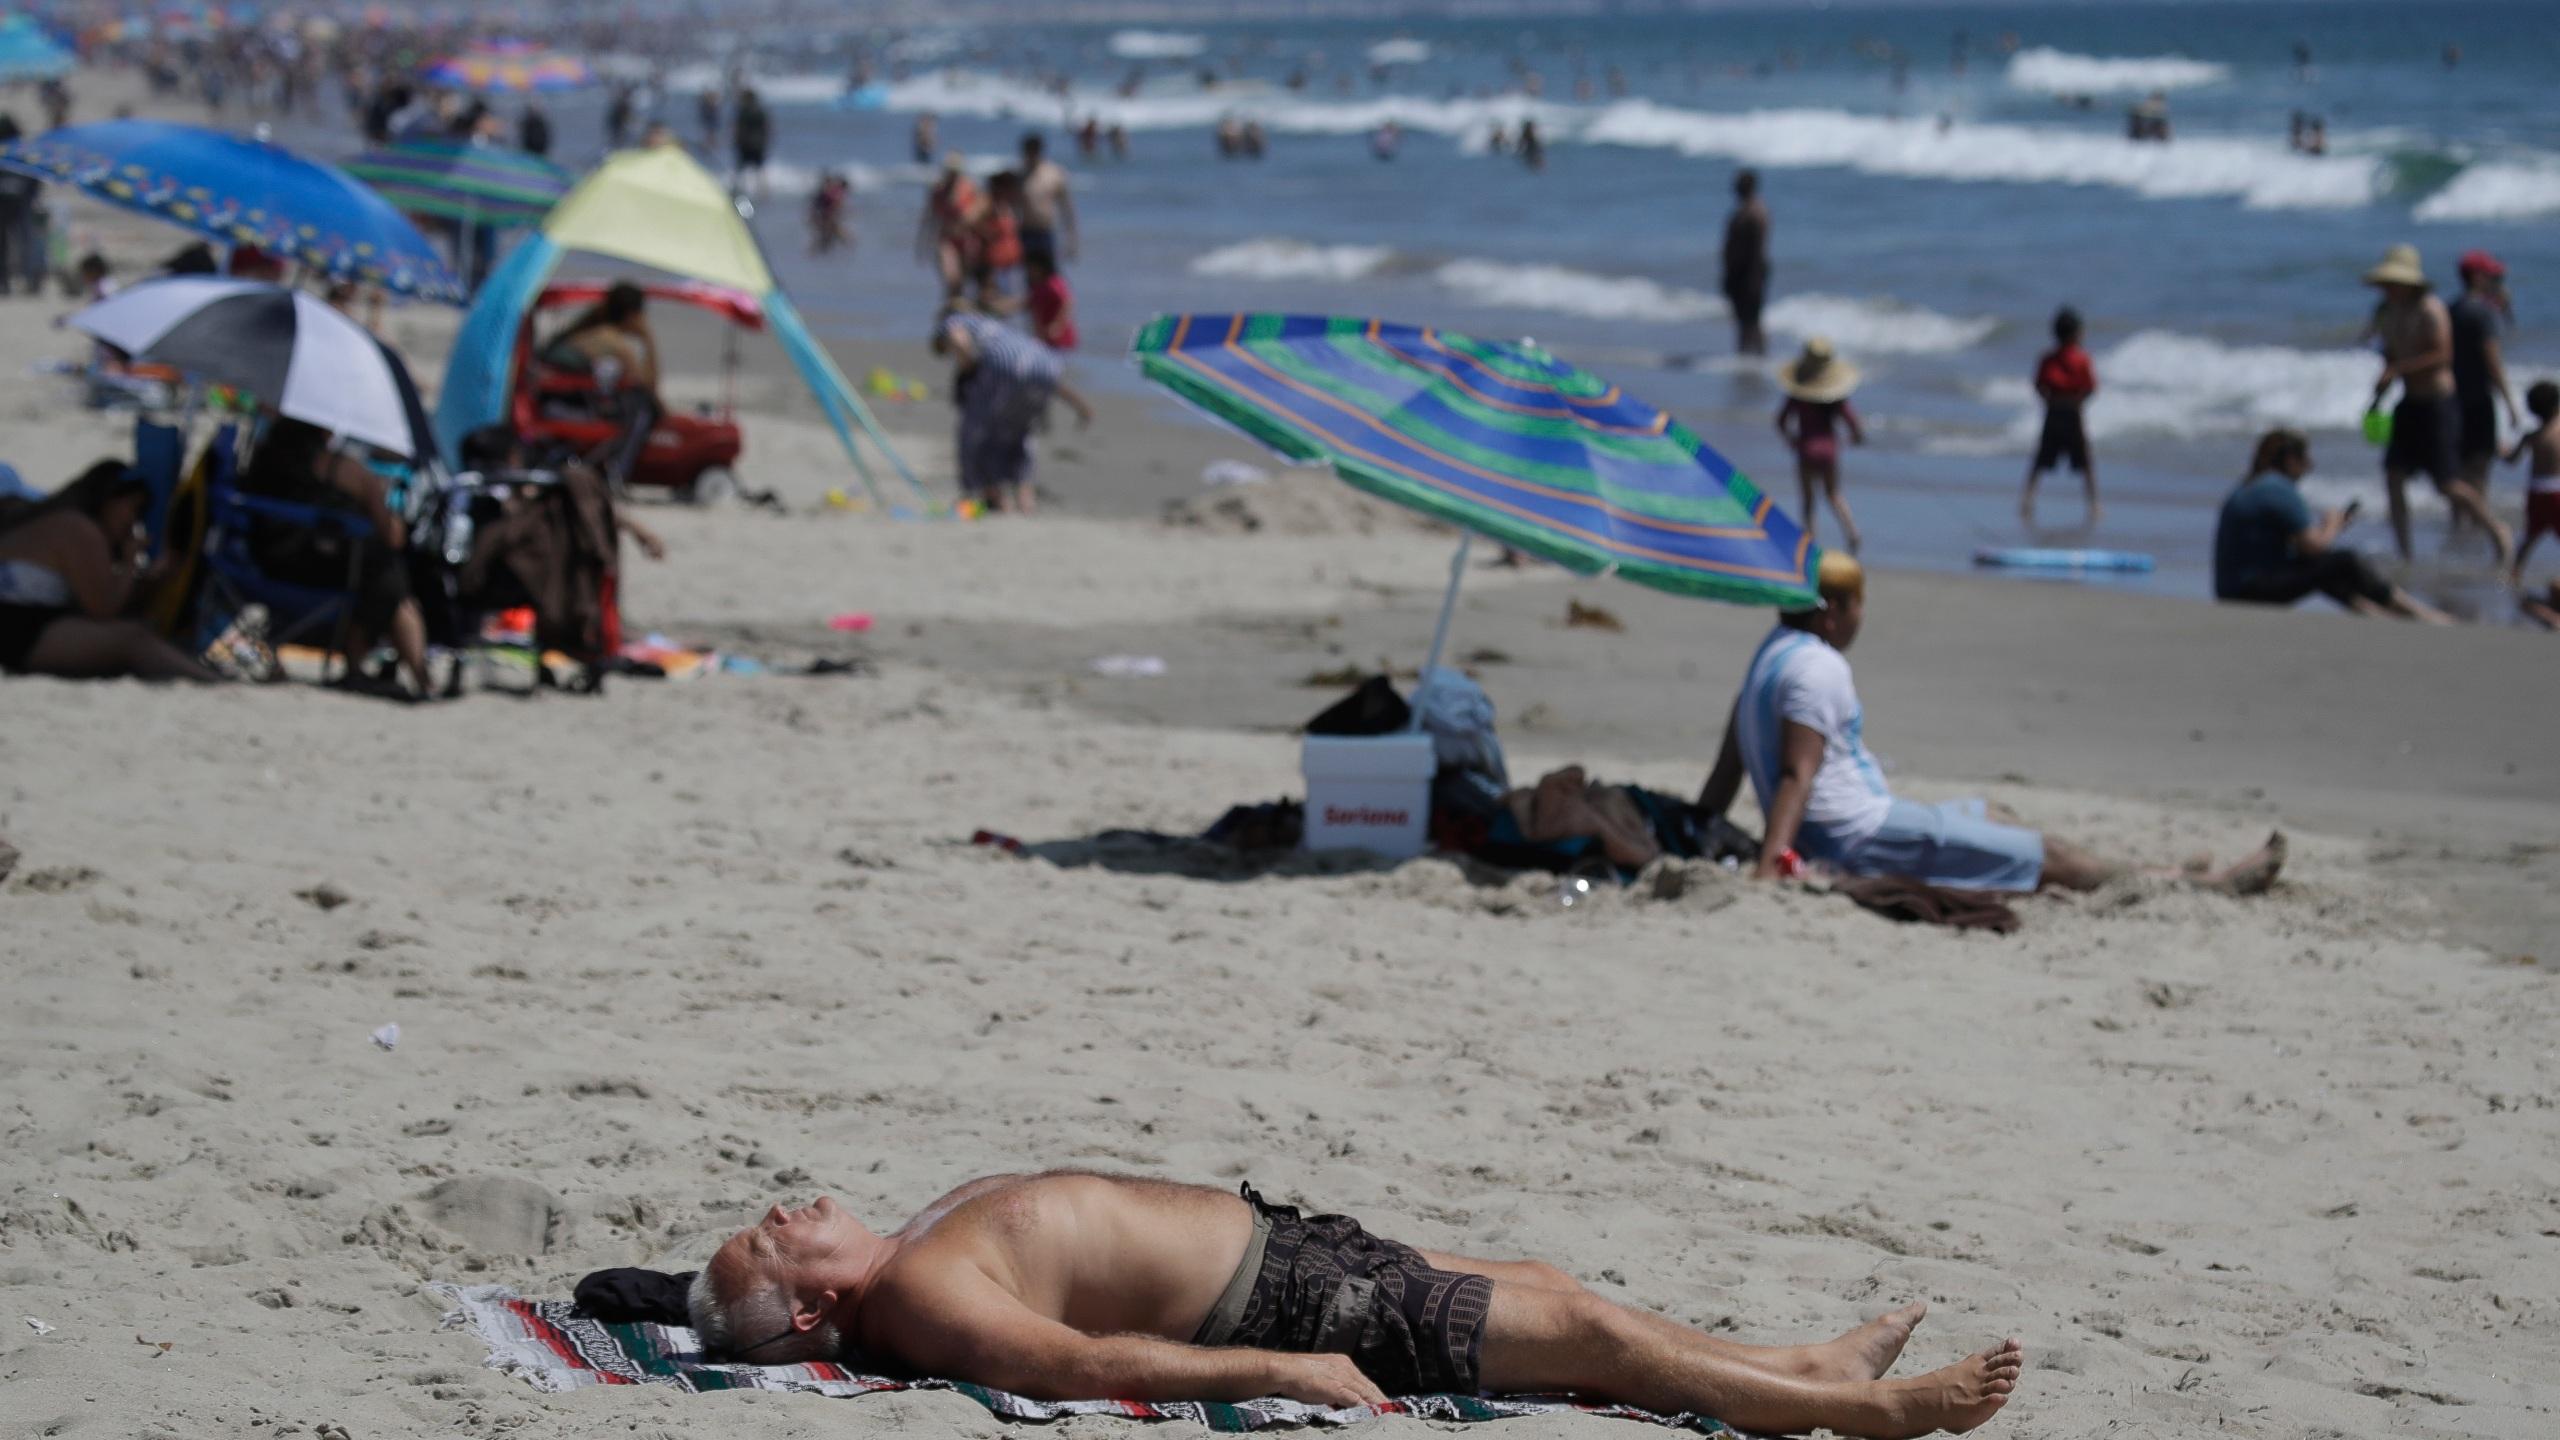 In this Sunday, July 12, 2020, file photo, a man lies on the beach amid the coronavirus pandemic in Santa Monica. (AP Photo/Marcio Jose Sanchez, File)